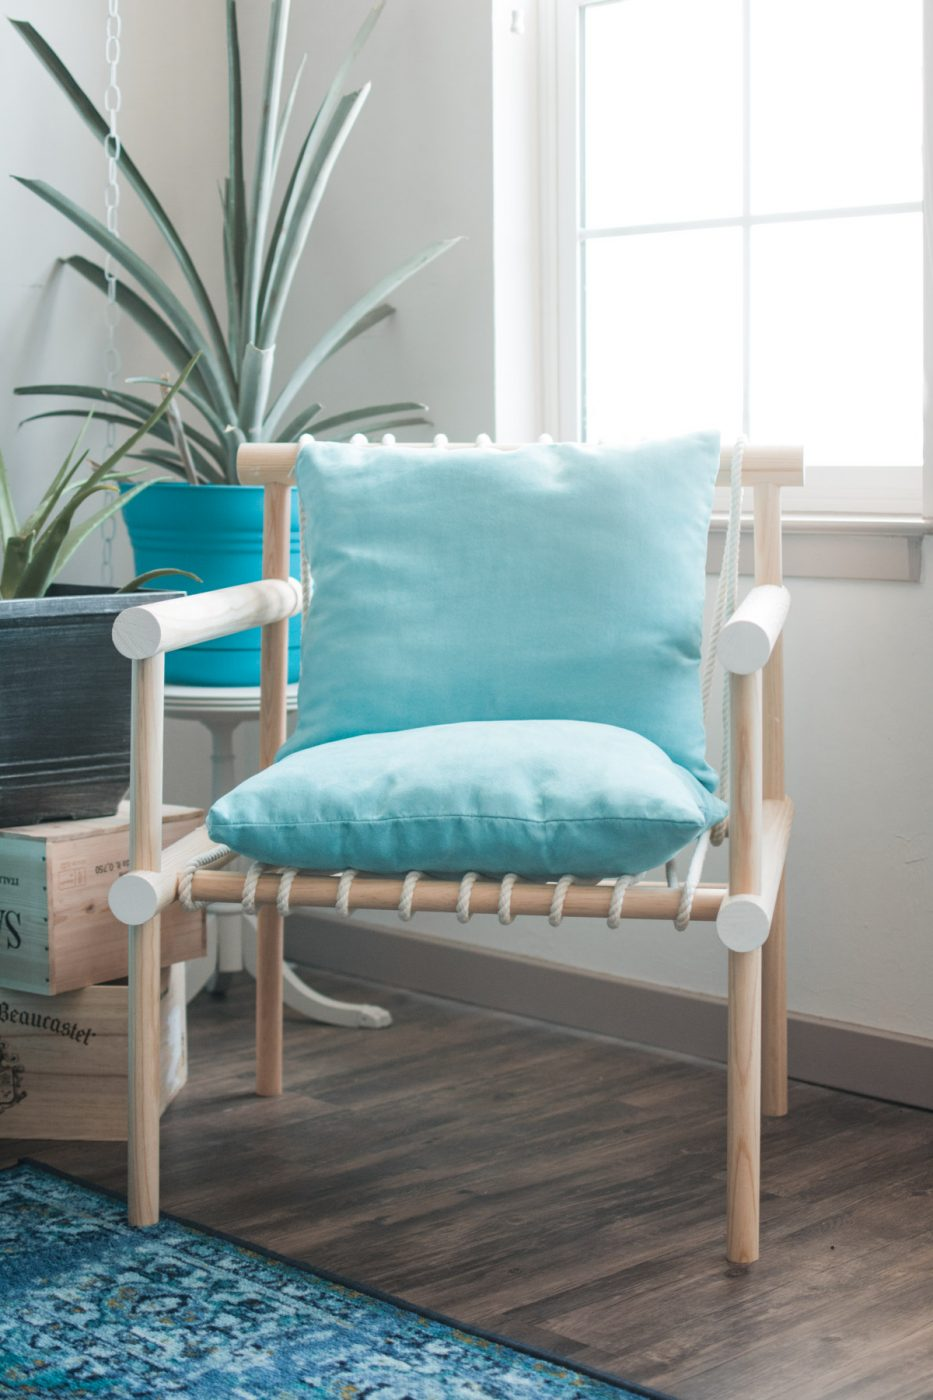 Boho Tropical Living Room Rope & Wooden Dowel Chair - Sweet Teal